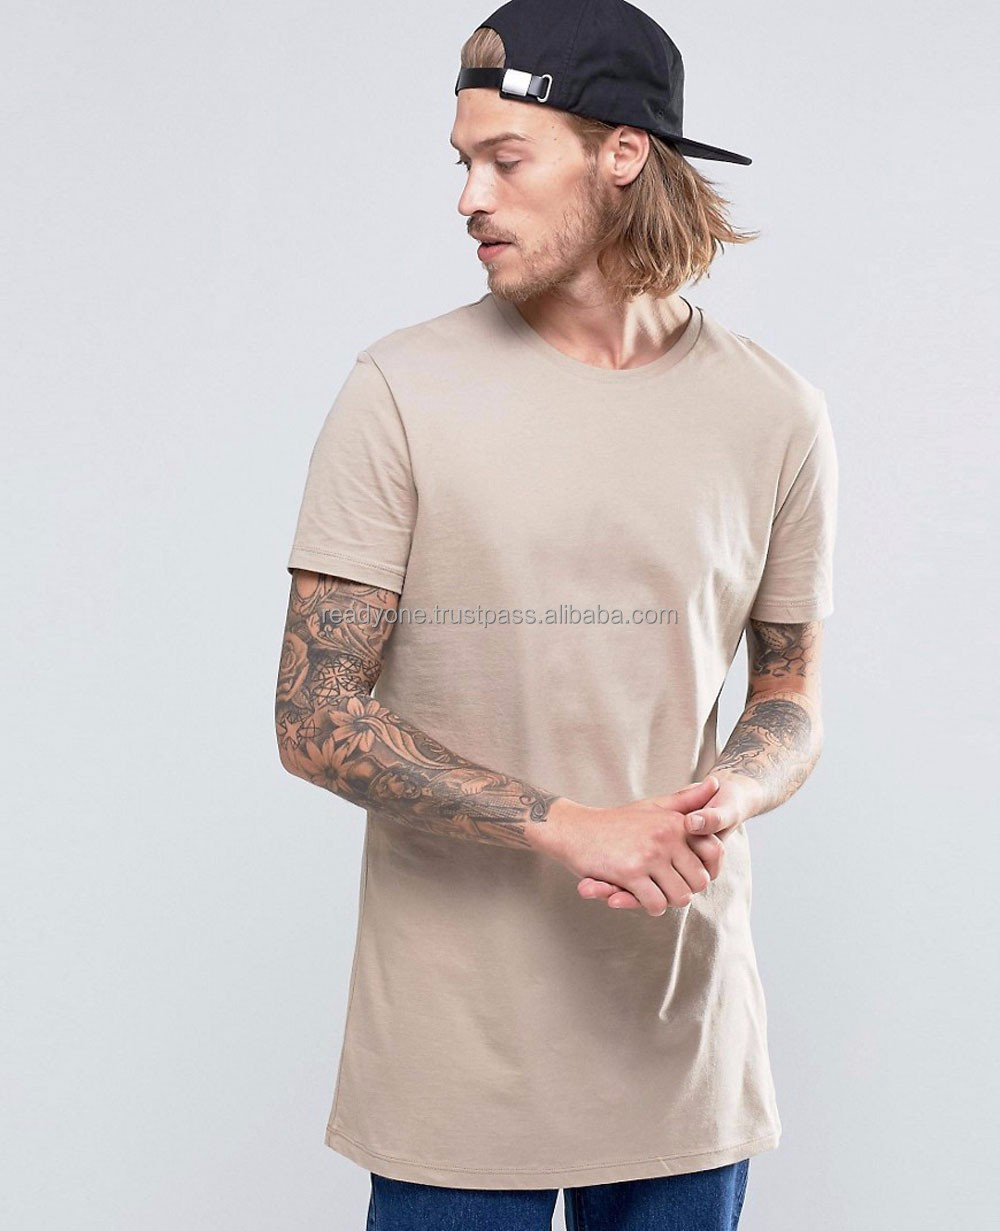 Hip hop style super longline curved hem 100% cotton breathable men t-shirt wholesale